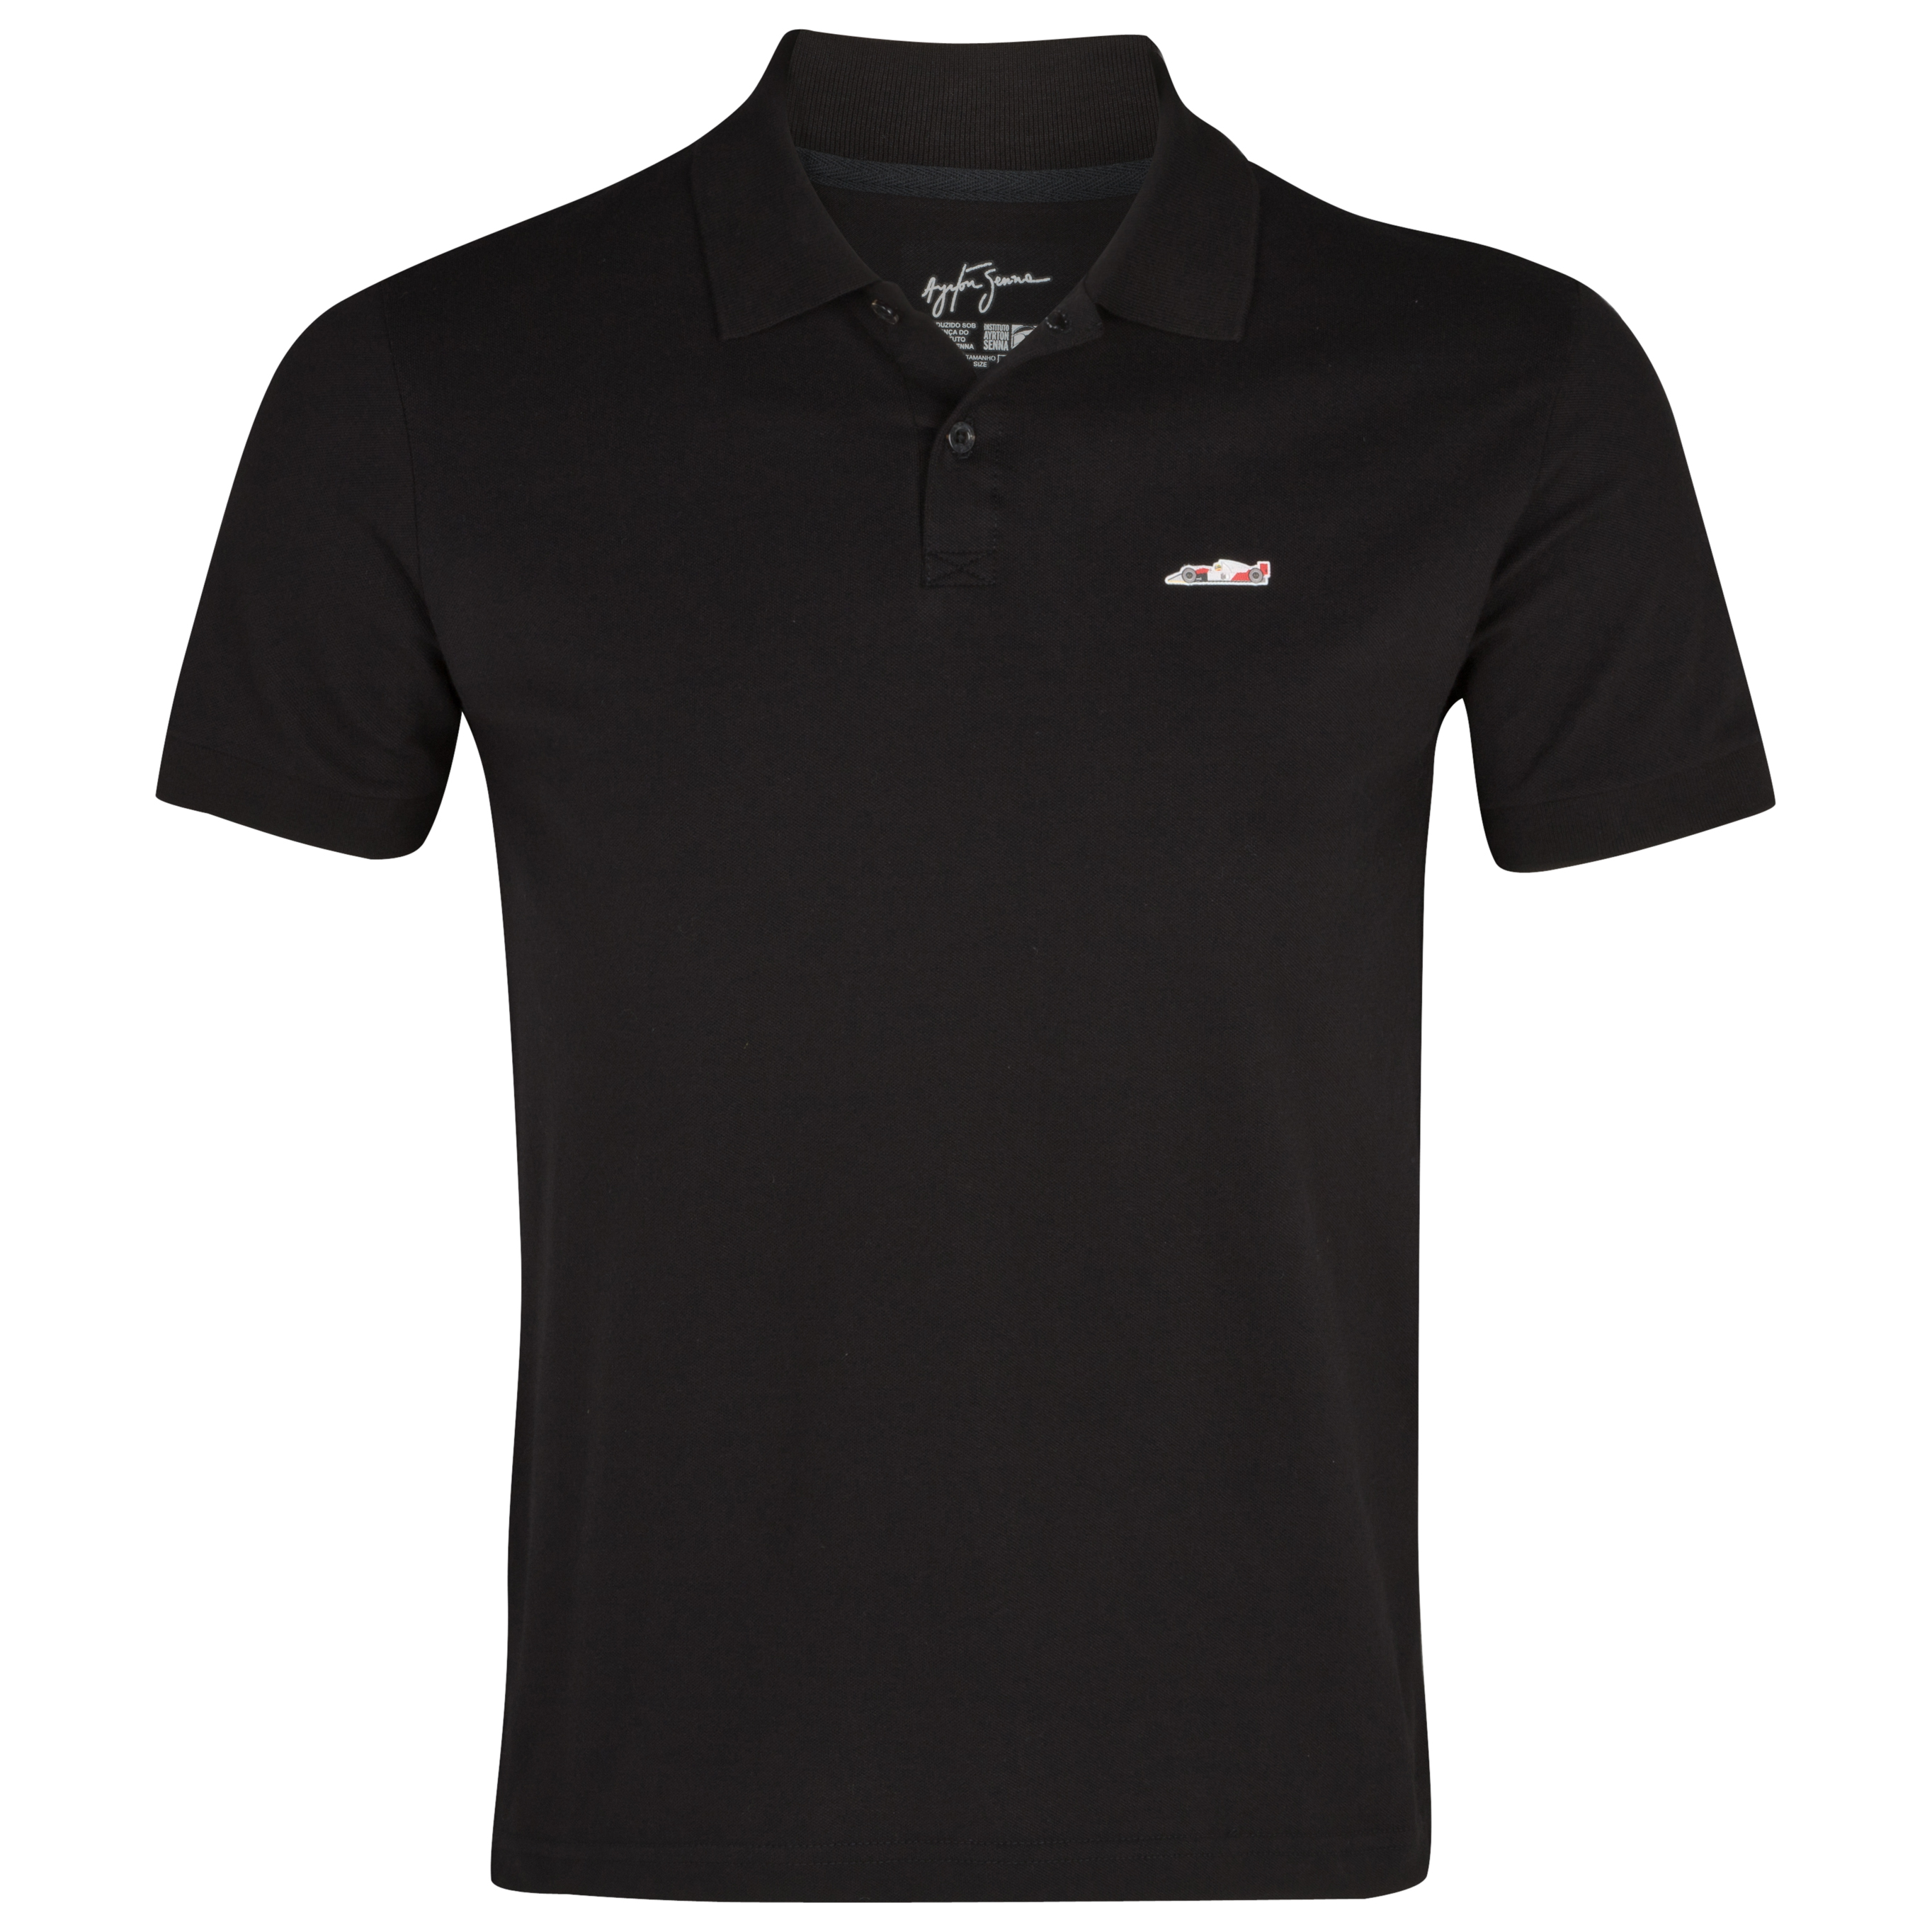 Ayrton Senna McLaren Polo - Black